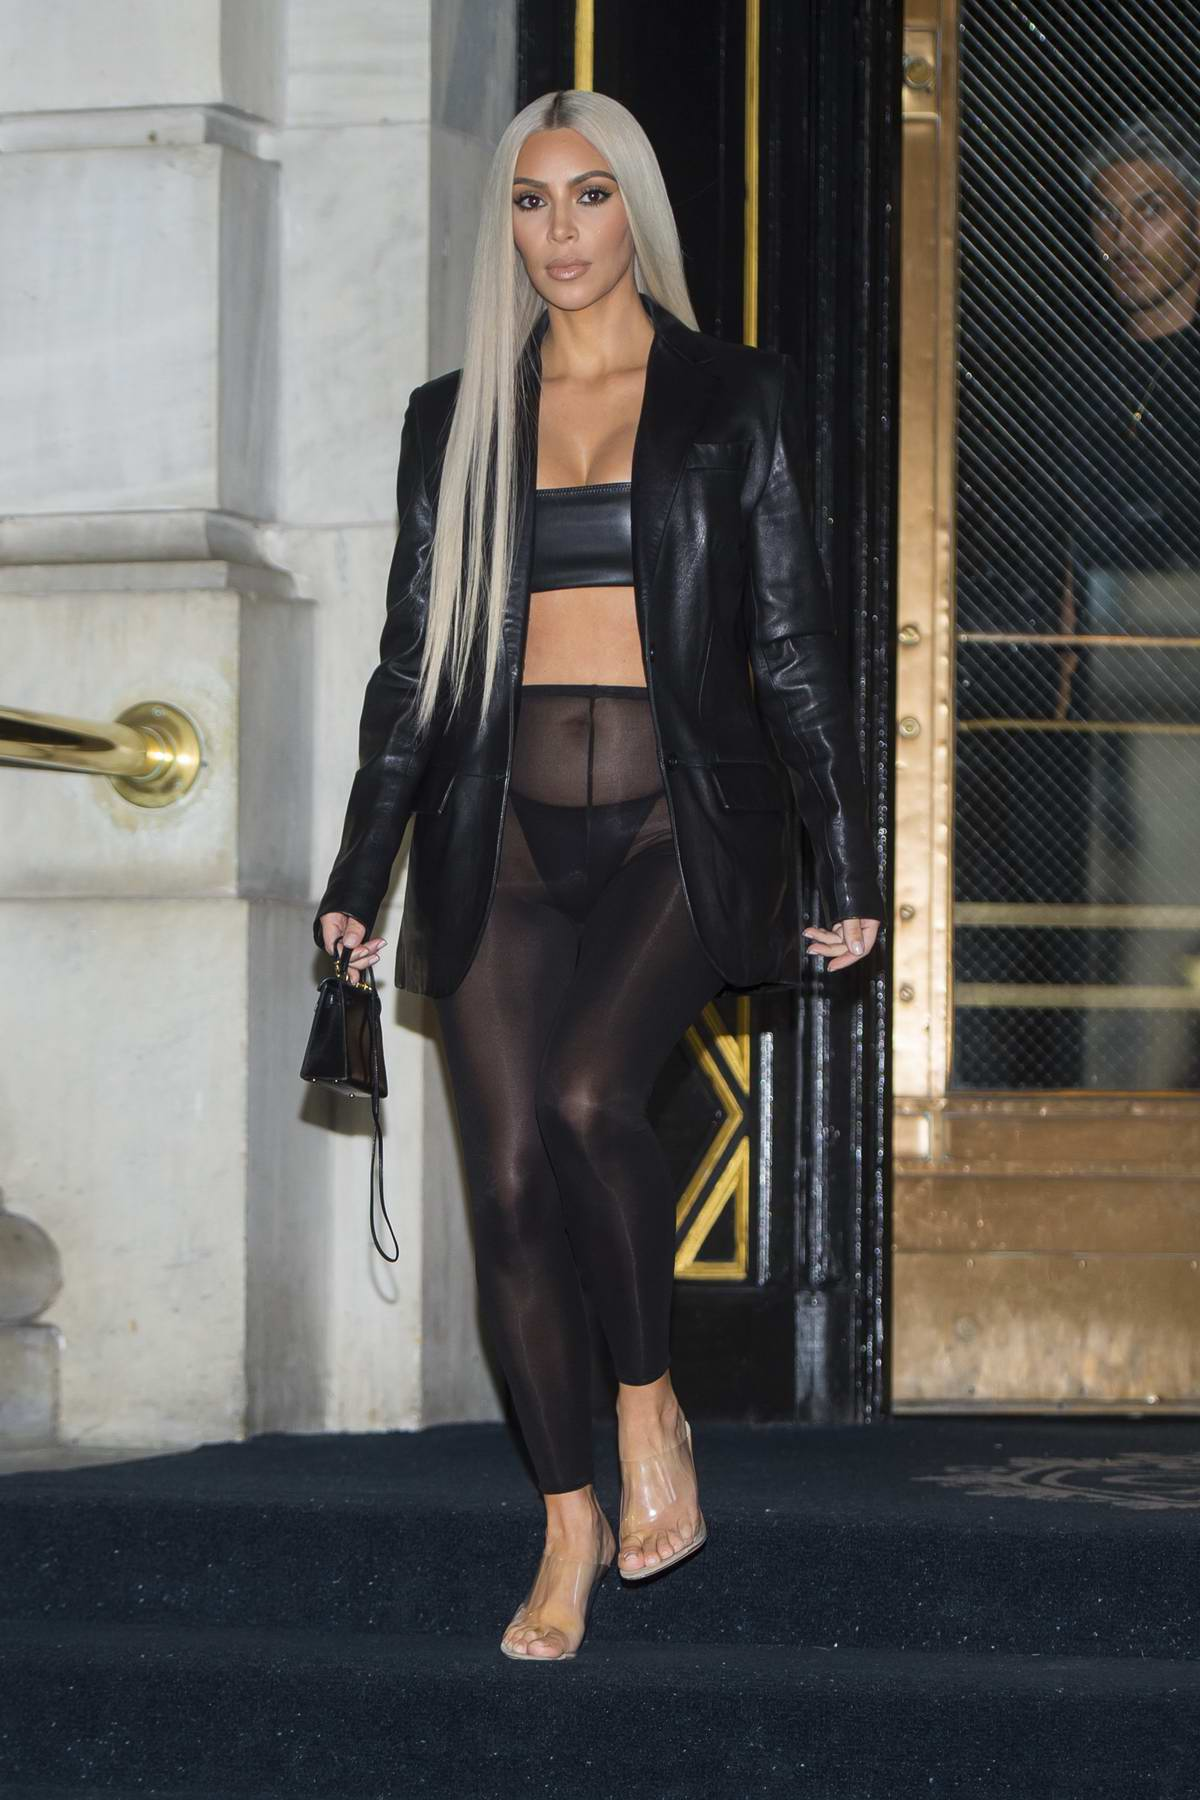 Kim Kardashian spotted in sheer pants while out in New York City